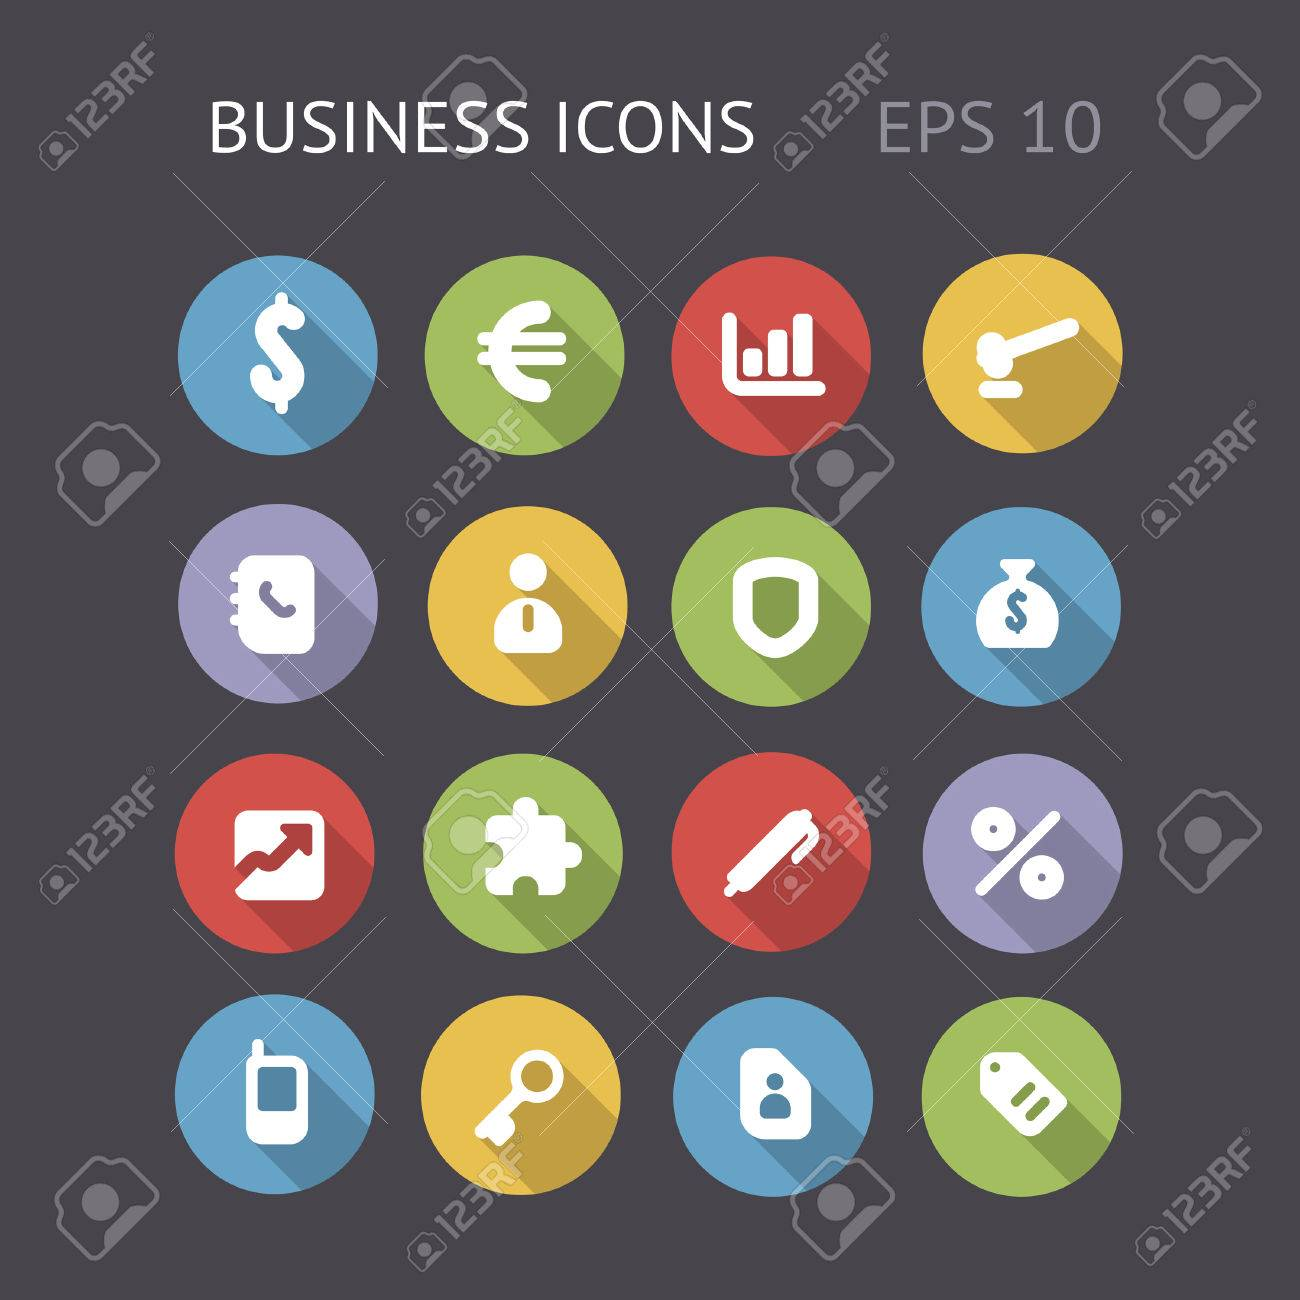 Flat icons for business Vector eps10 contains objects with transparency - 23202677